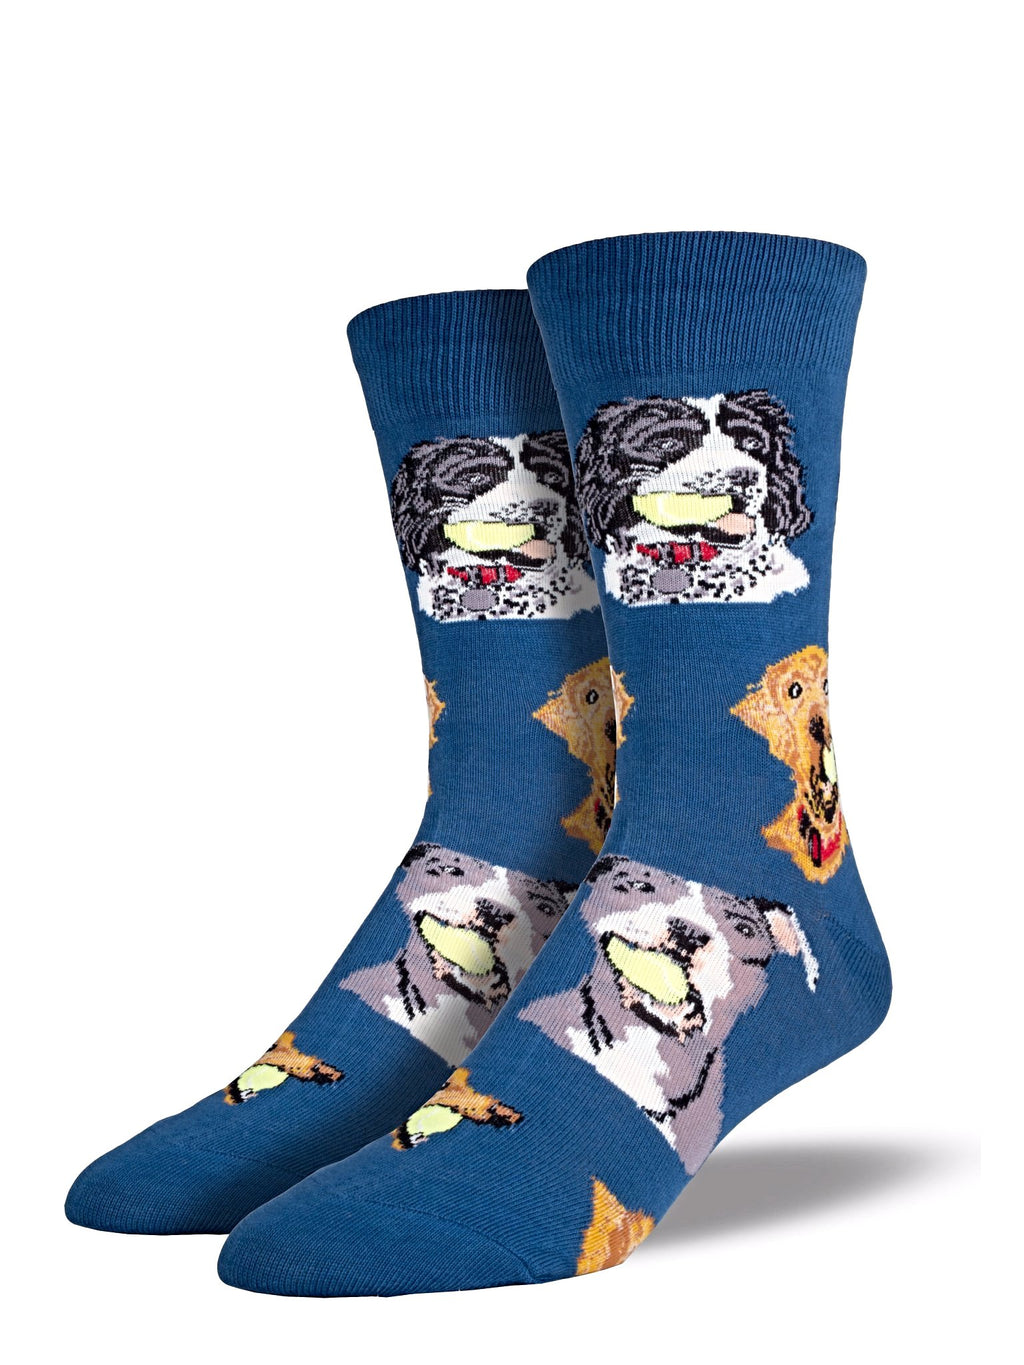 Socksmith Men's Socks - Ball Dog